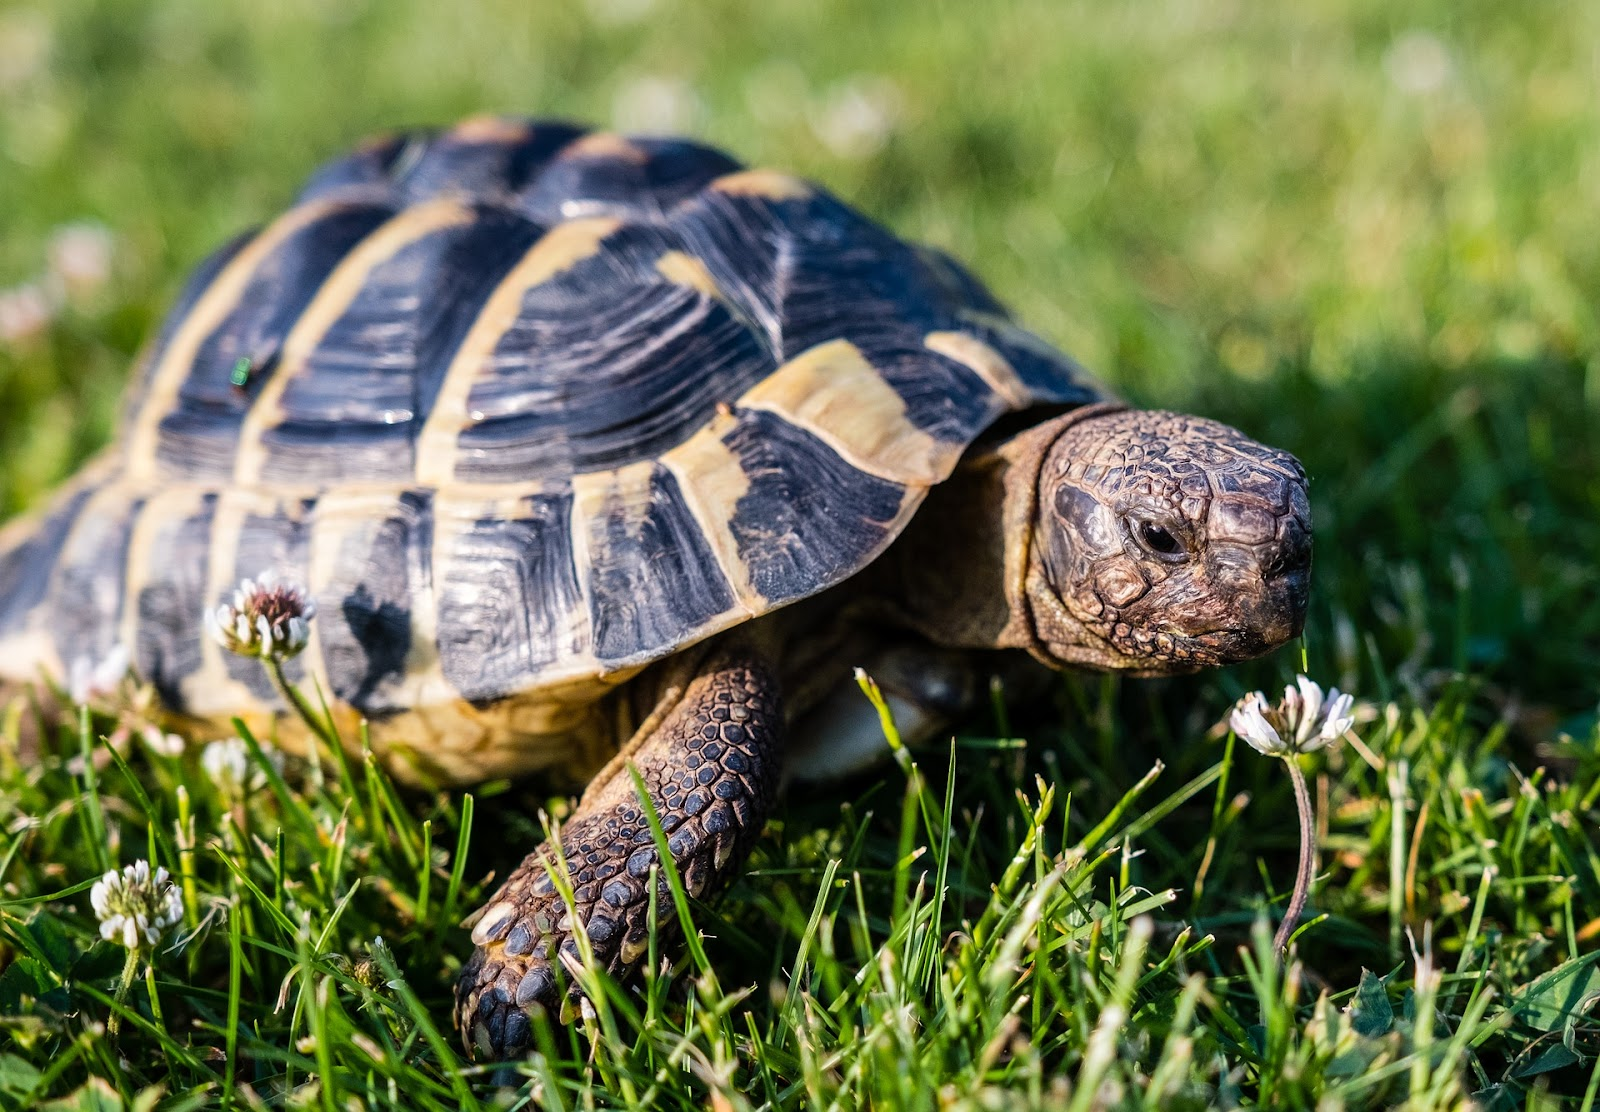 Small tortoise in the grass